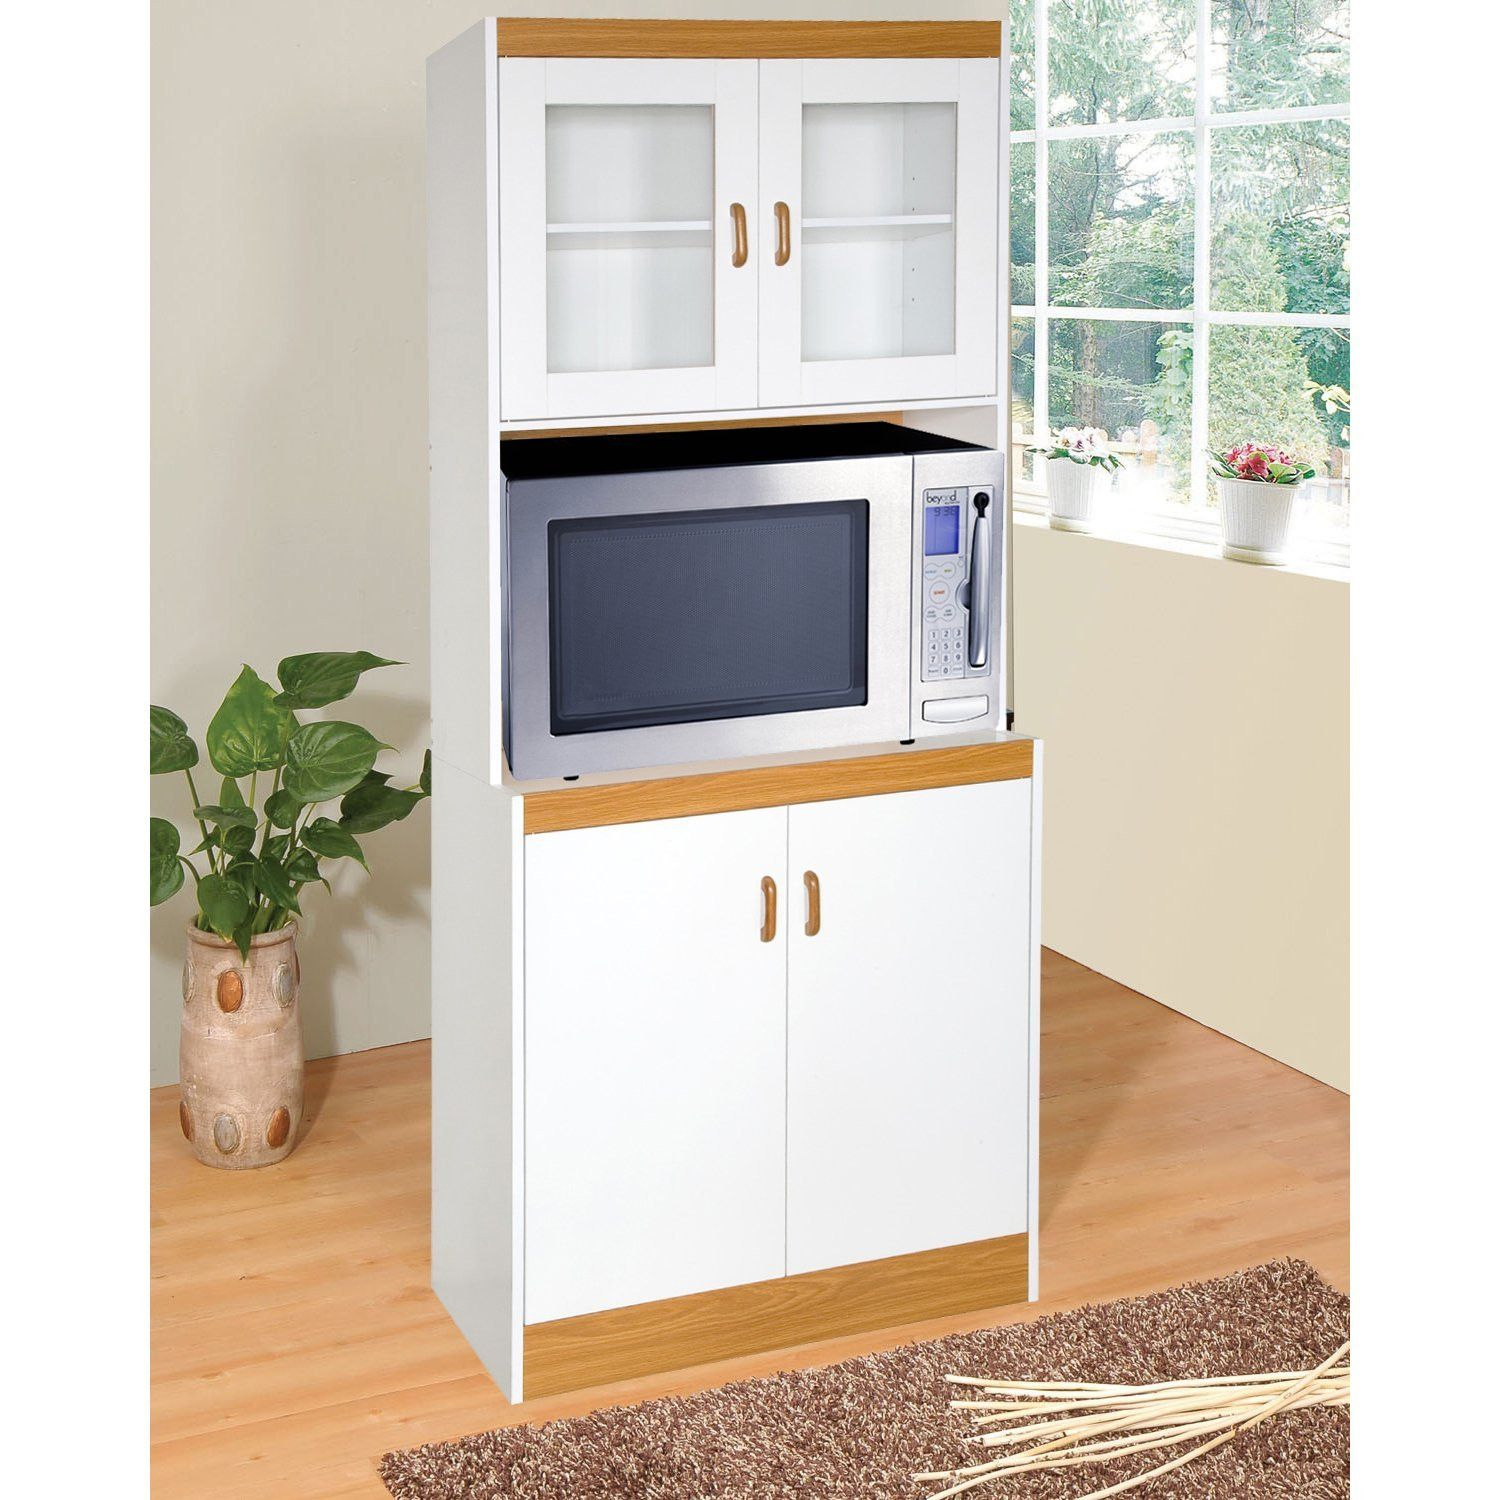 50 Microwave Cabinet With Doors Kitchen Shelf Display Ideas Check